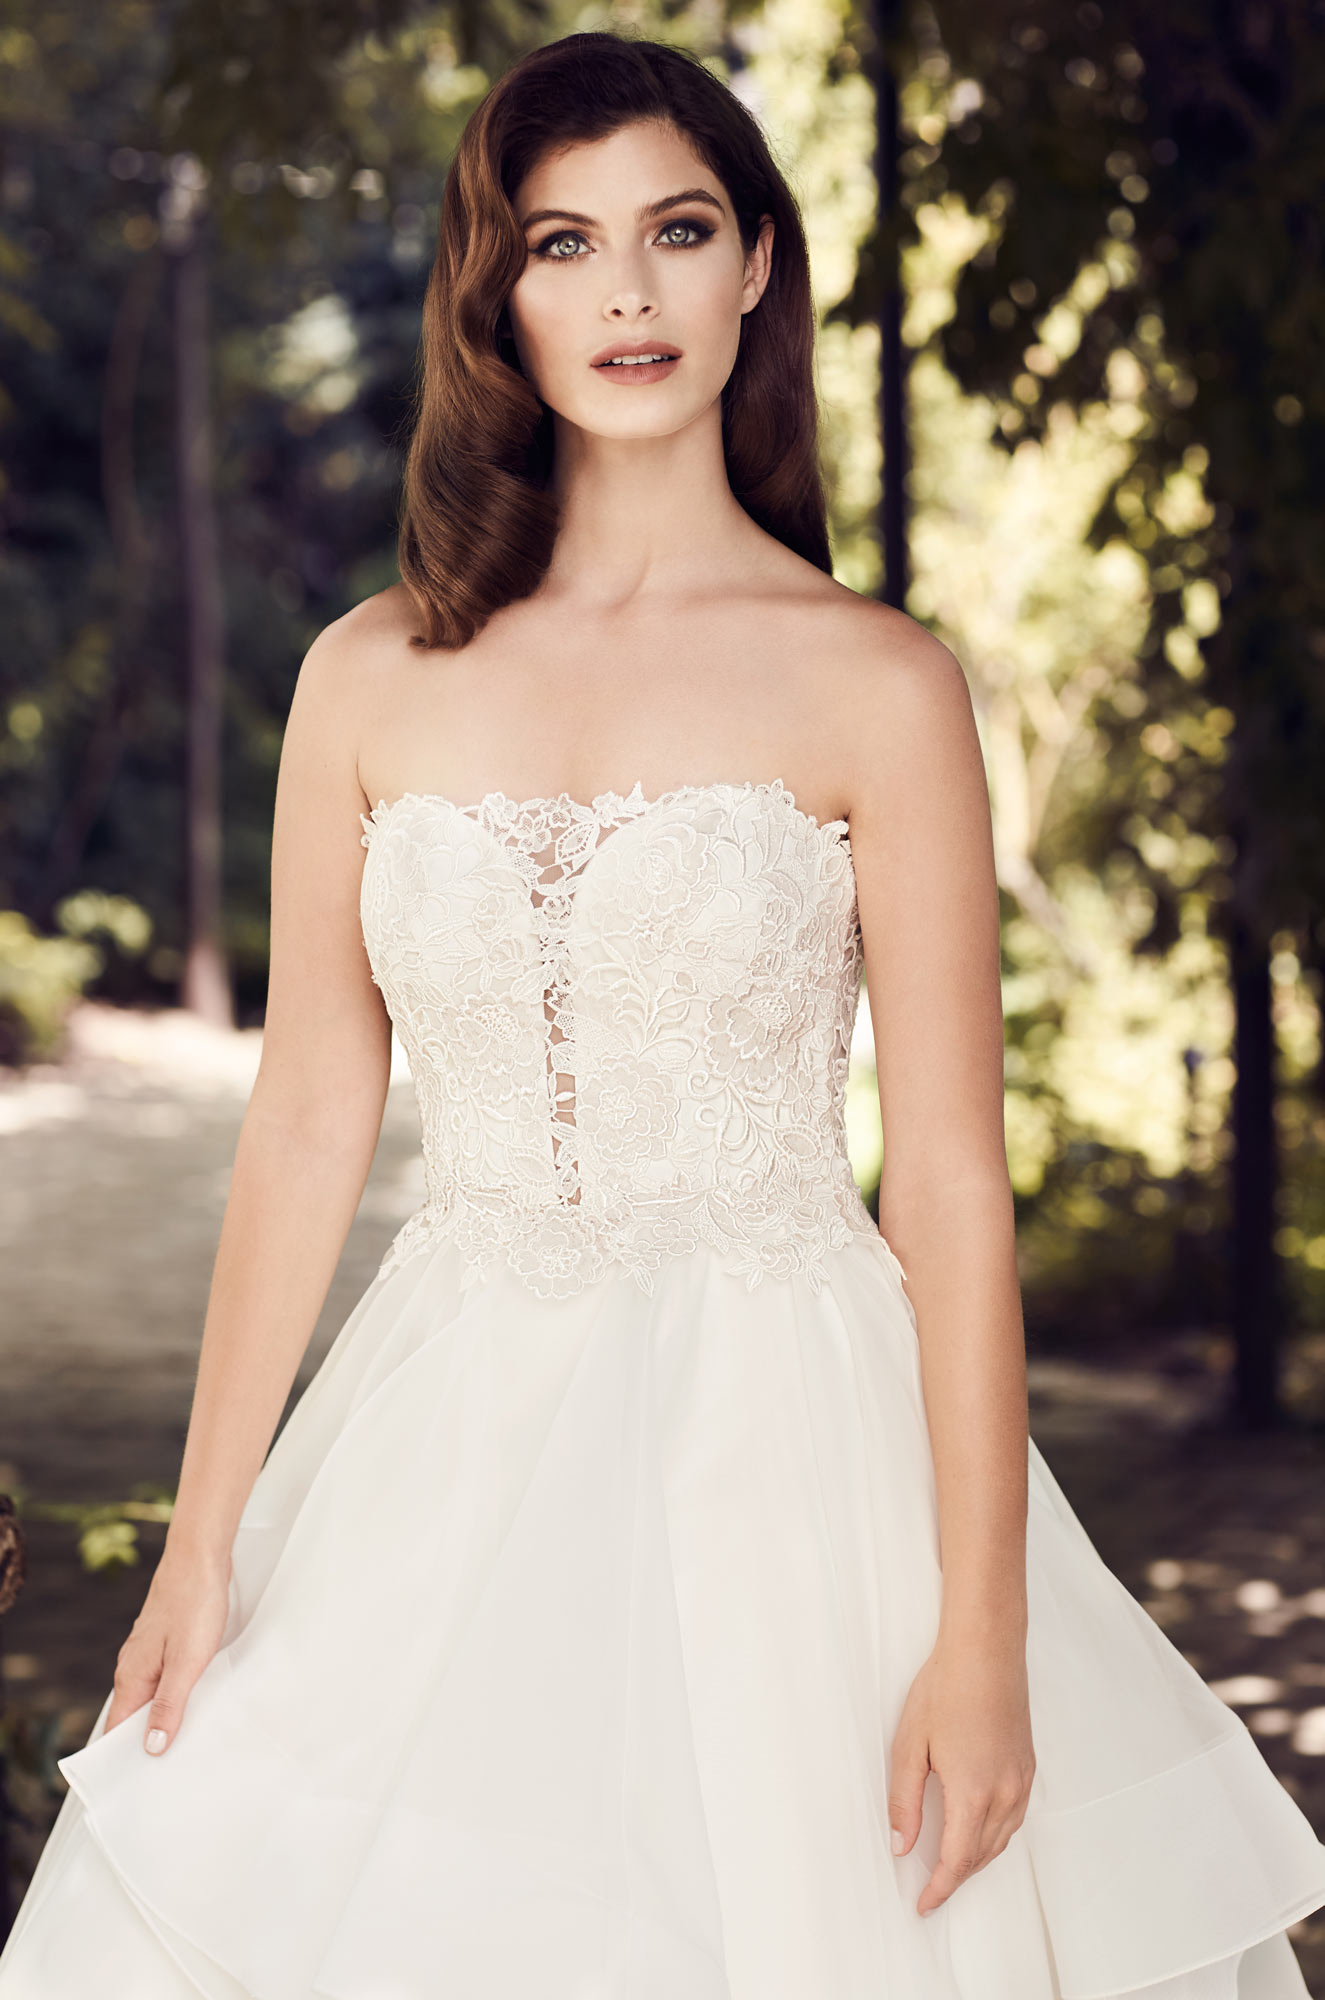 Line Two-Tone Lace Wedding Dress - Style #4729 | Paloma Blanca